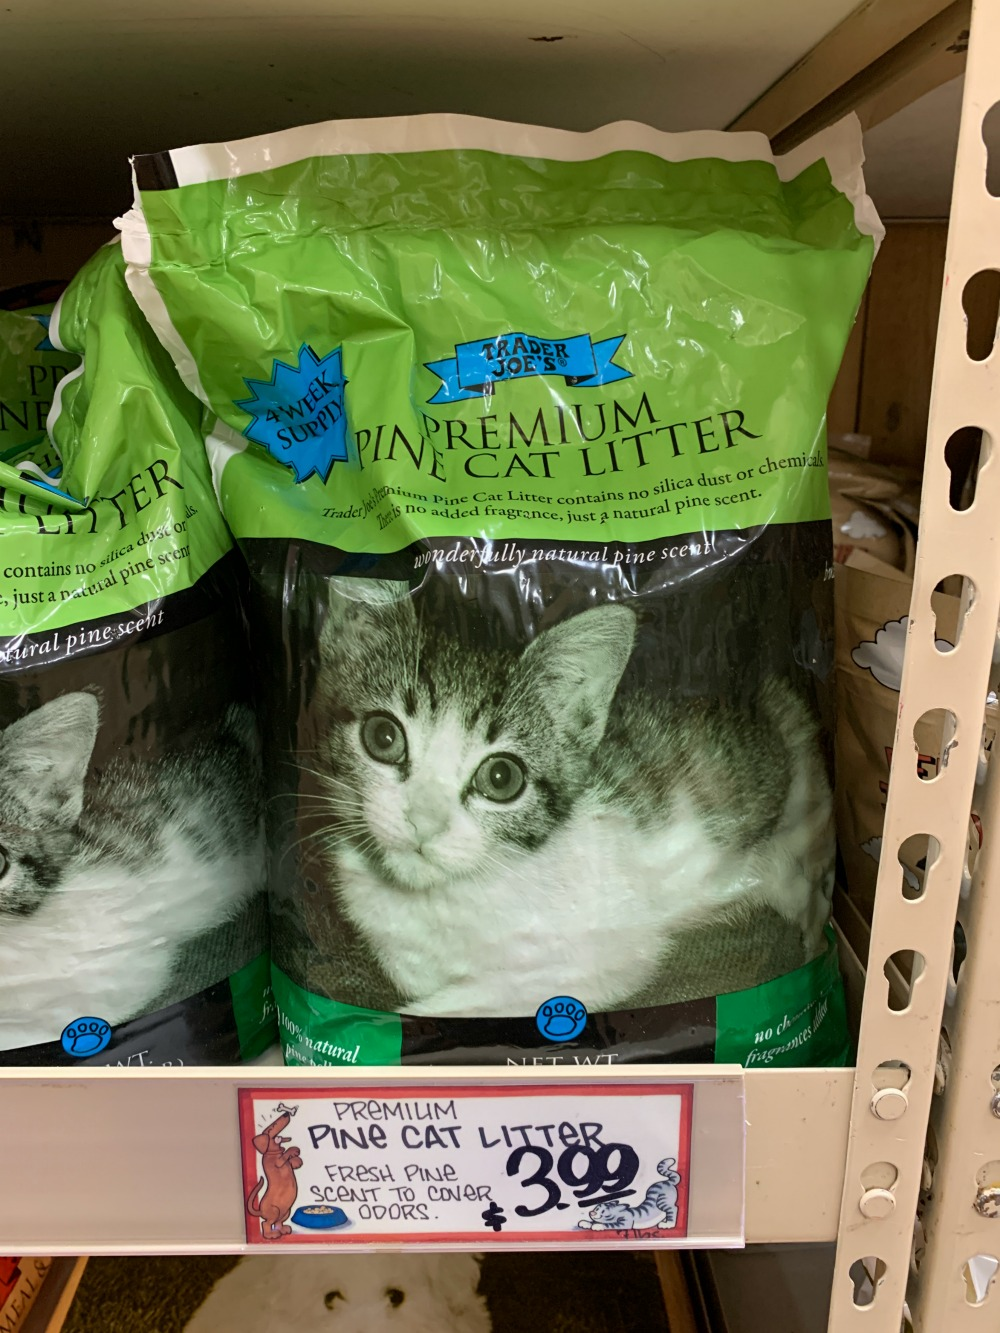 Trader Joe's premium pine cat litter bag sitting on a shelf in the store. Bag is green with a cat on the front.